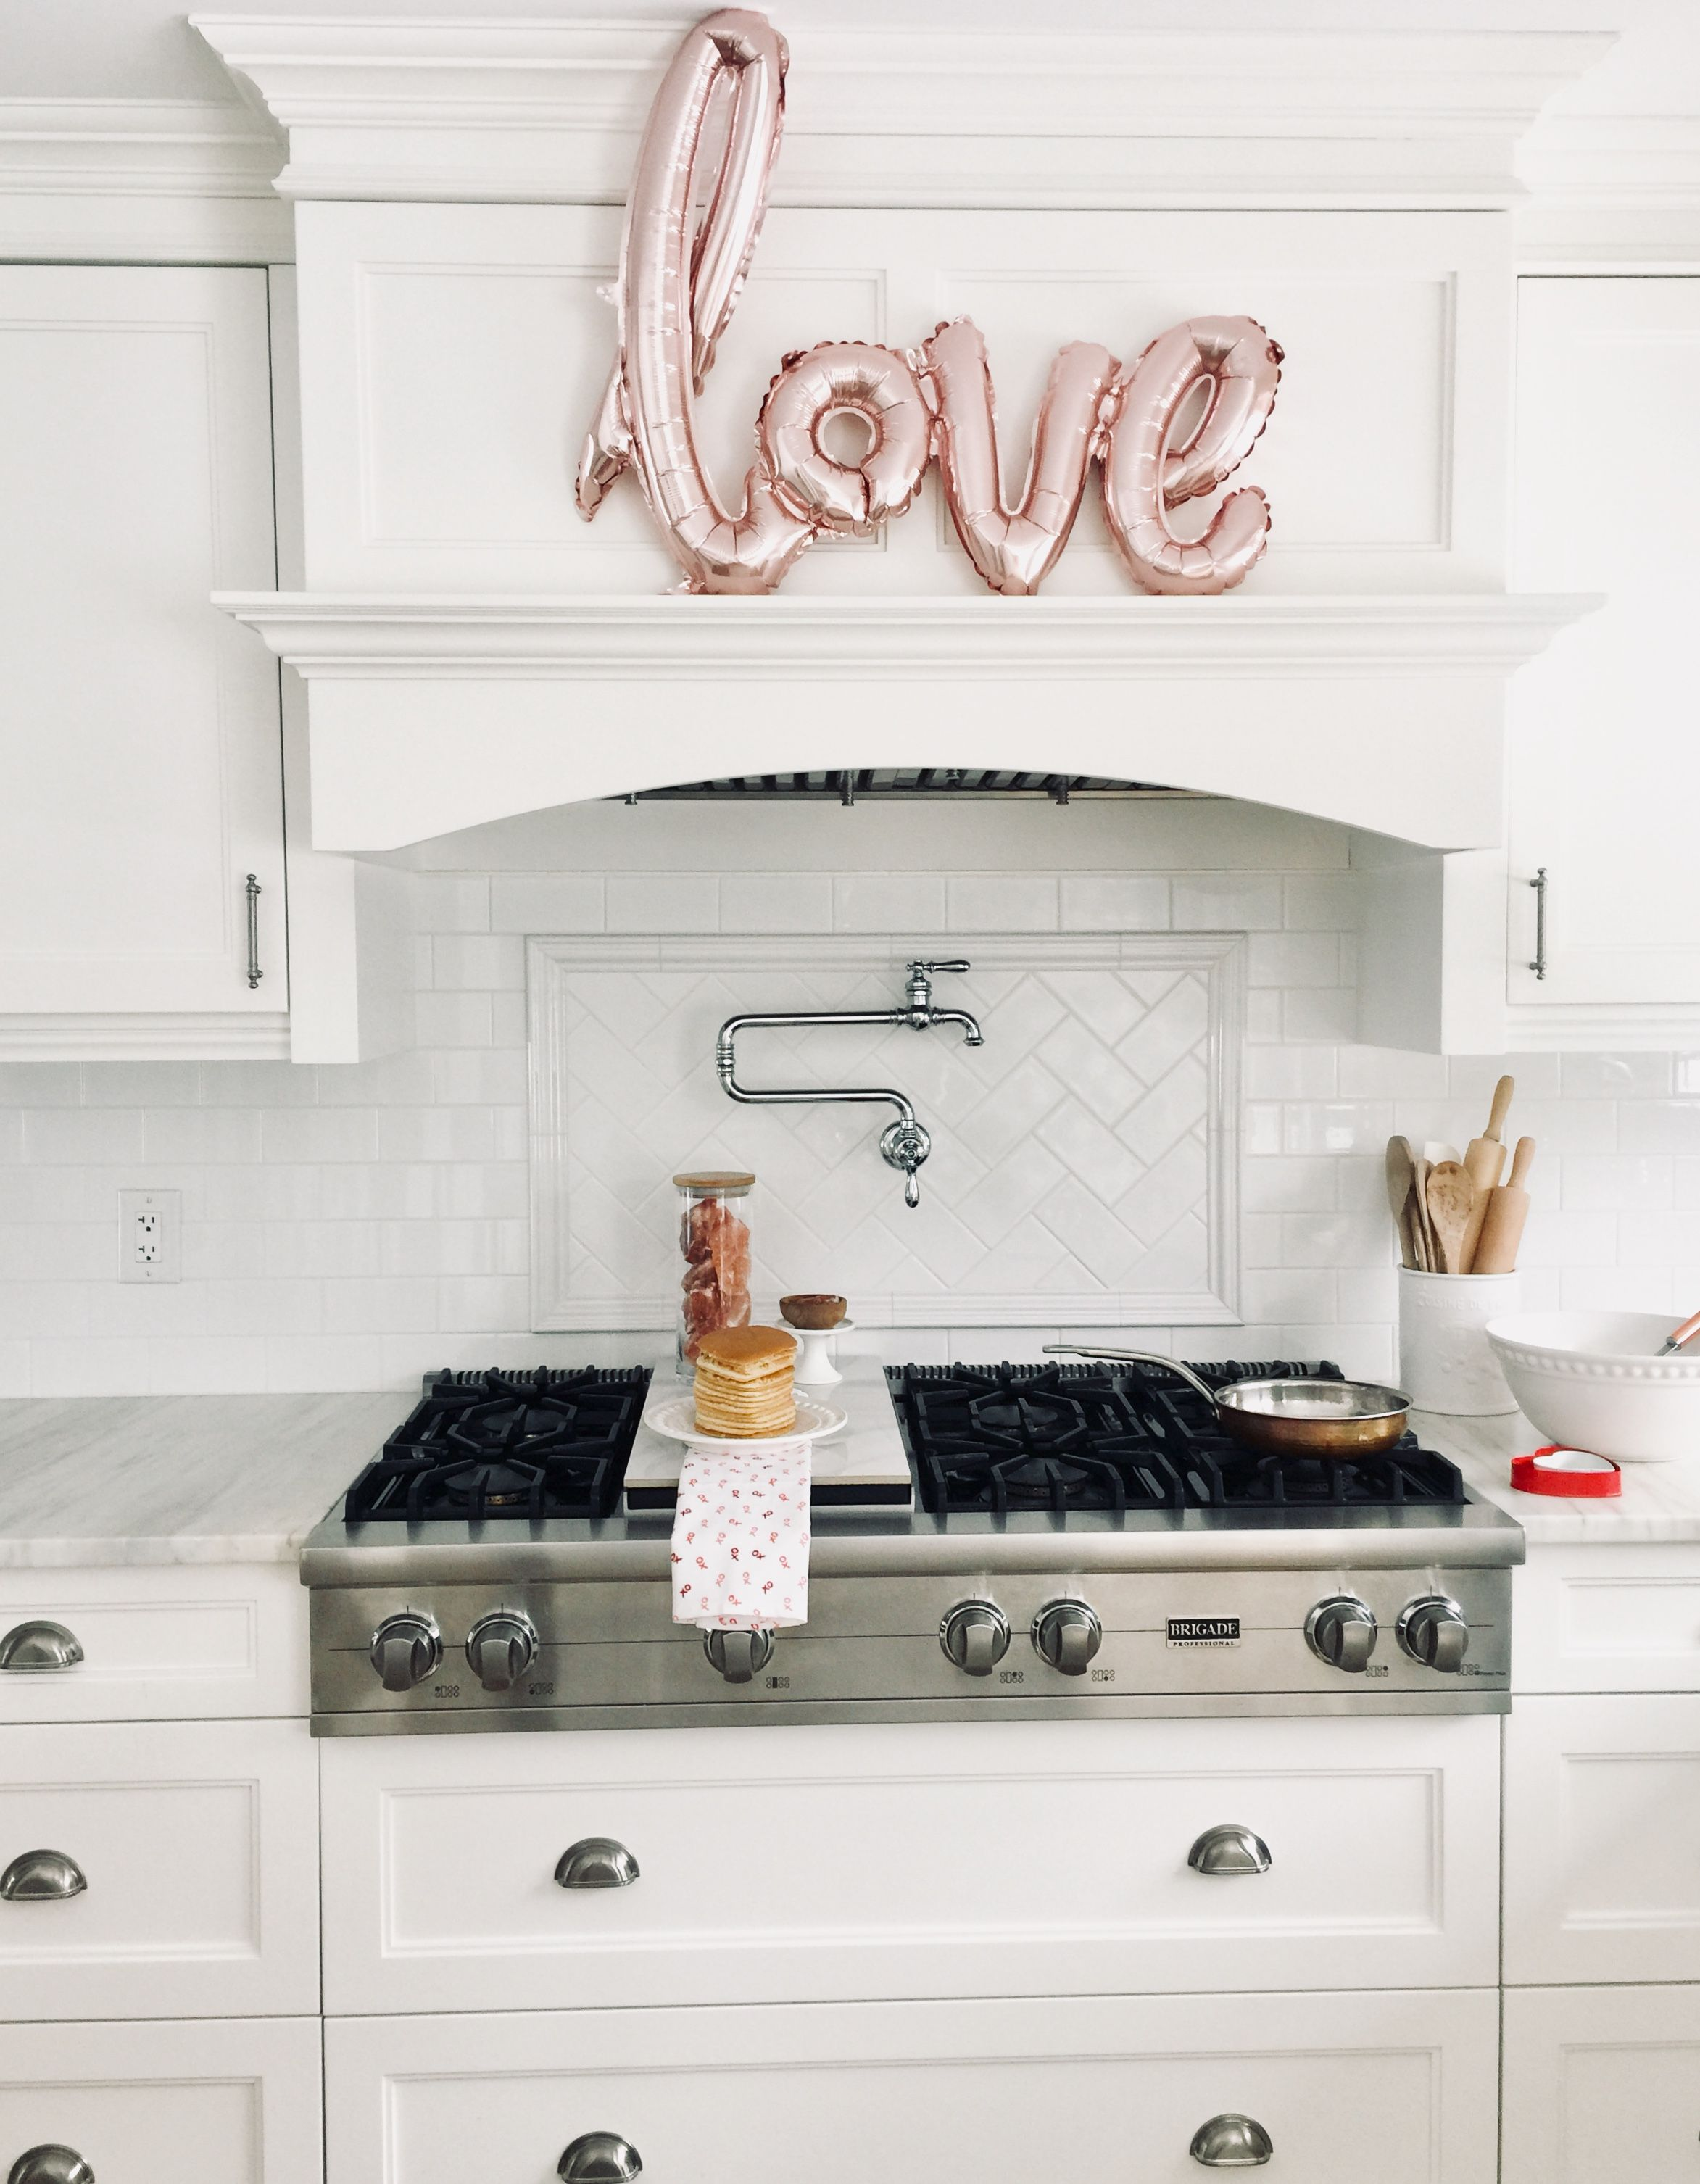 Valentines day Kitchen decor via @melanie_voyer www.MelanieVoyer.com ...